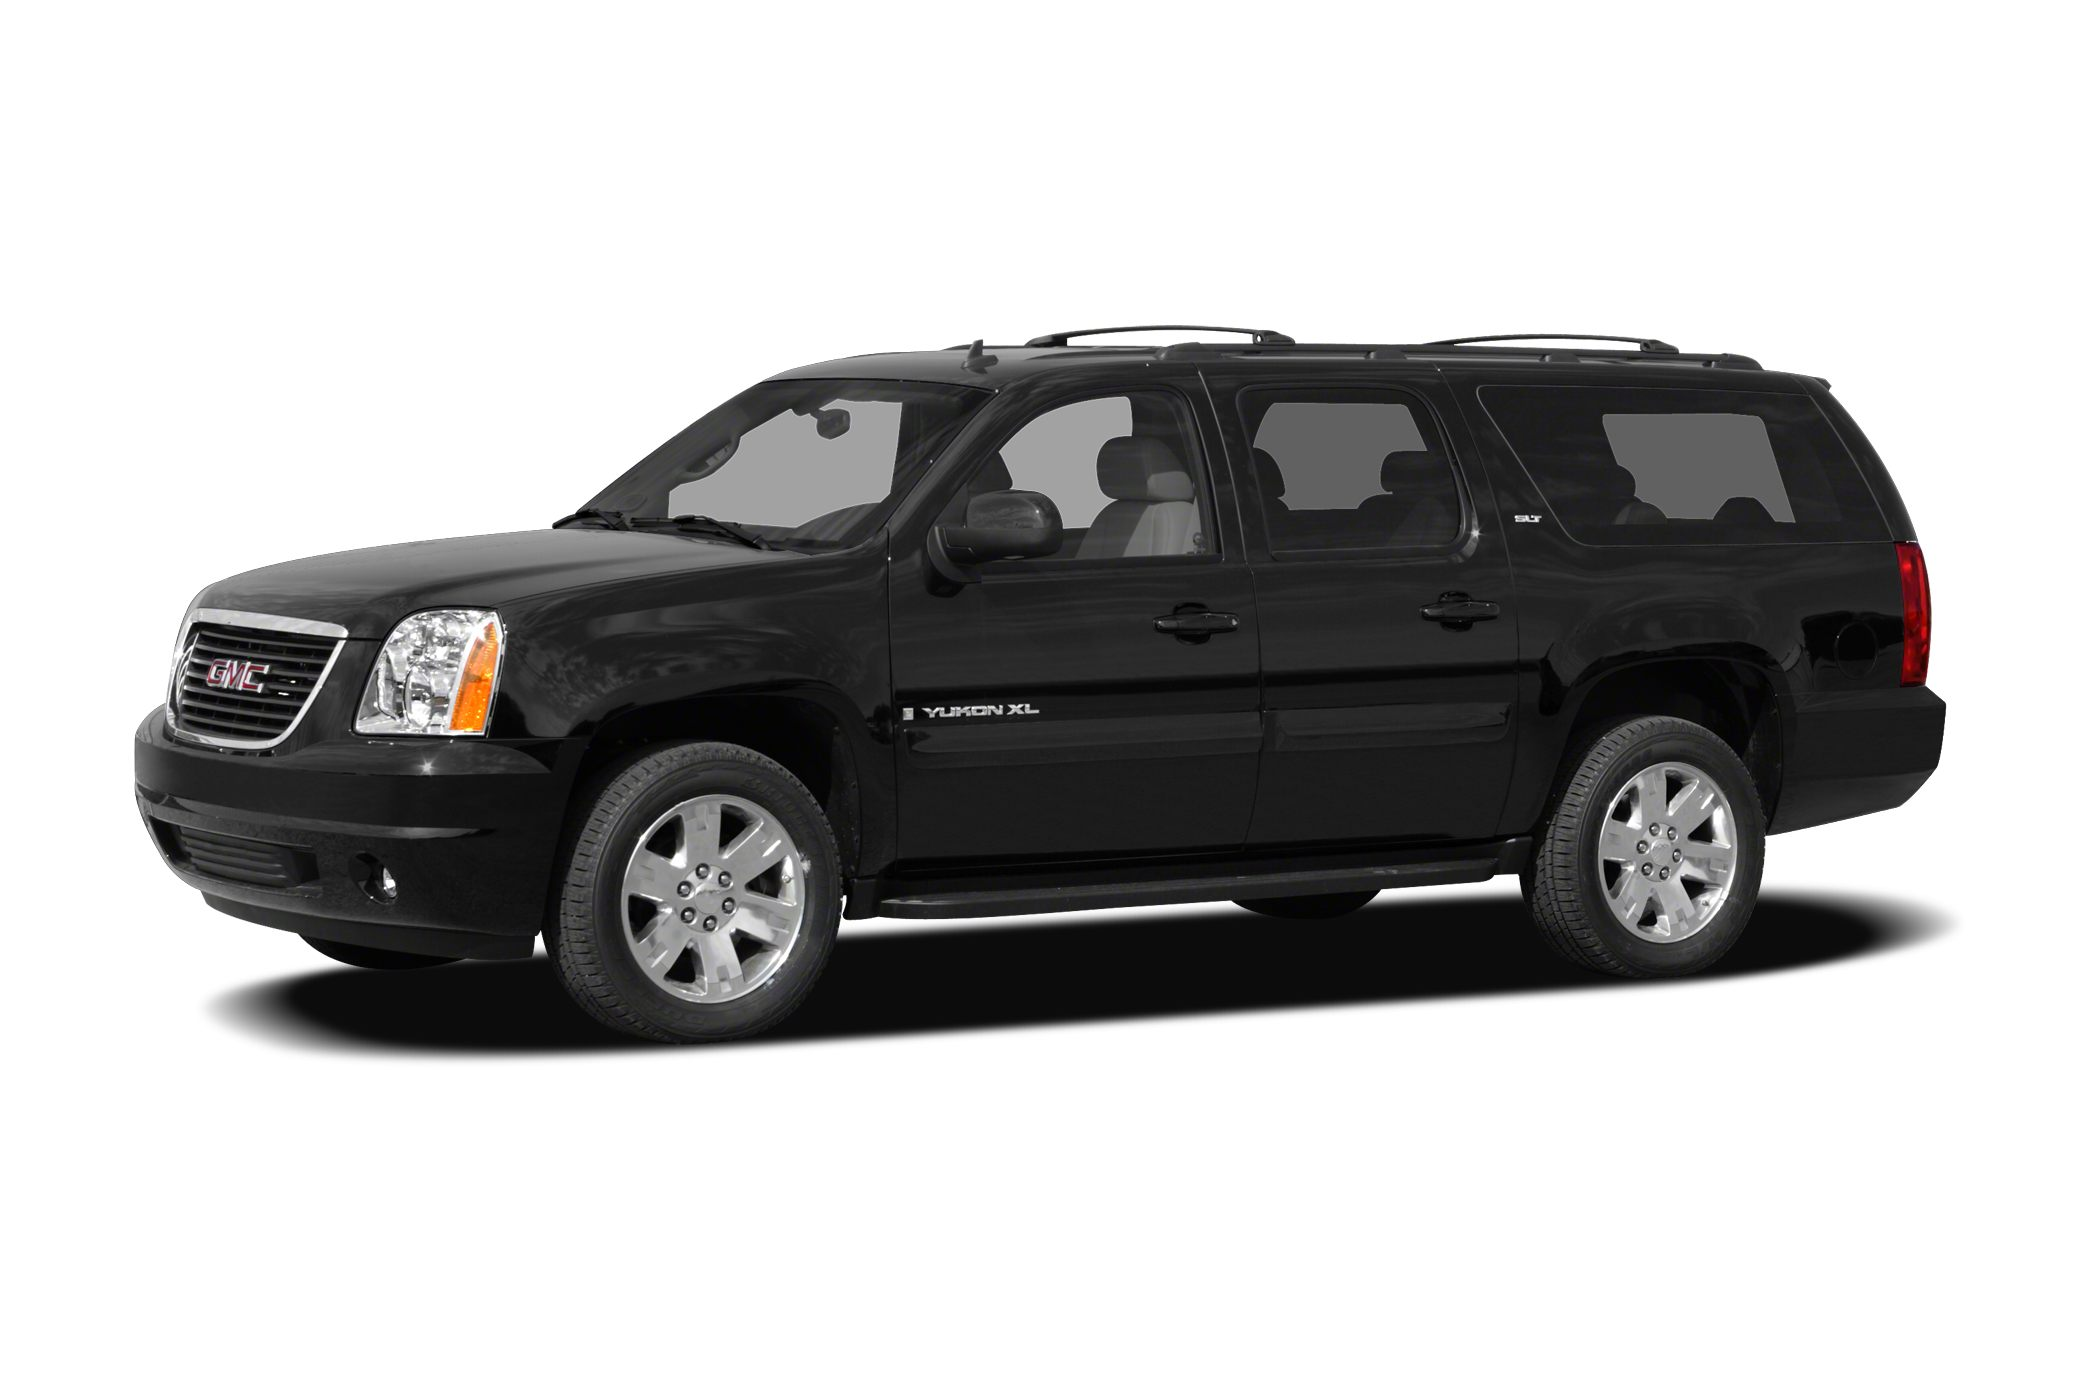 2011 GMC Yukon XL 1500 SLT Miles 72137Color Black Stock 17EX25A VIN 1GKS1KE05BR159707